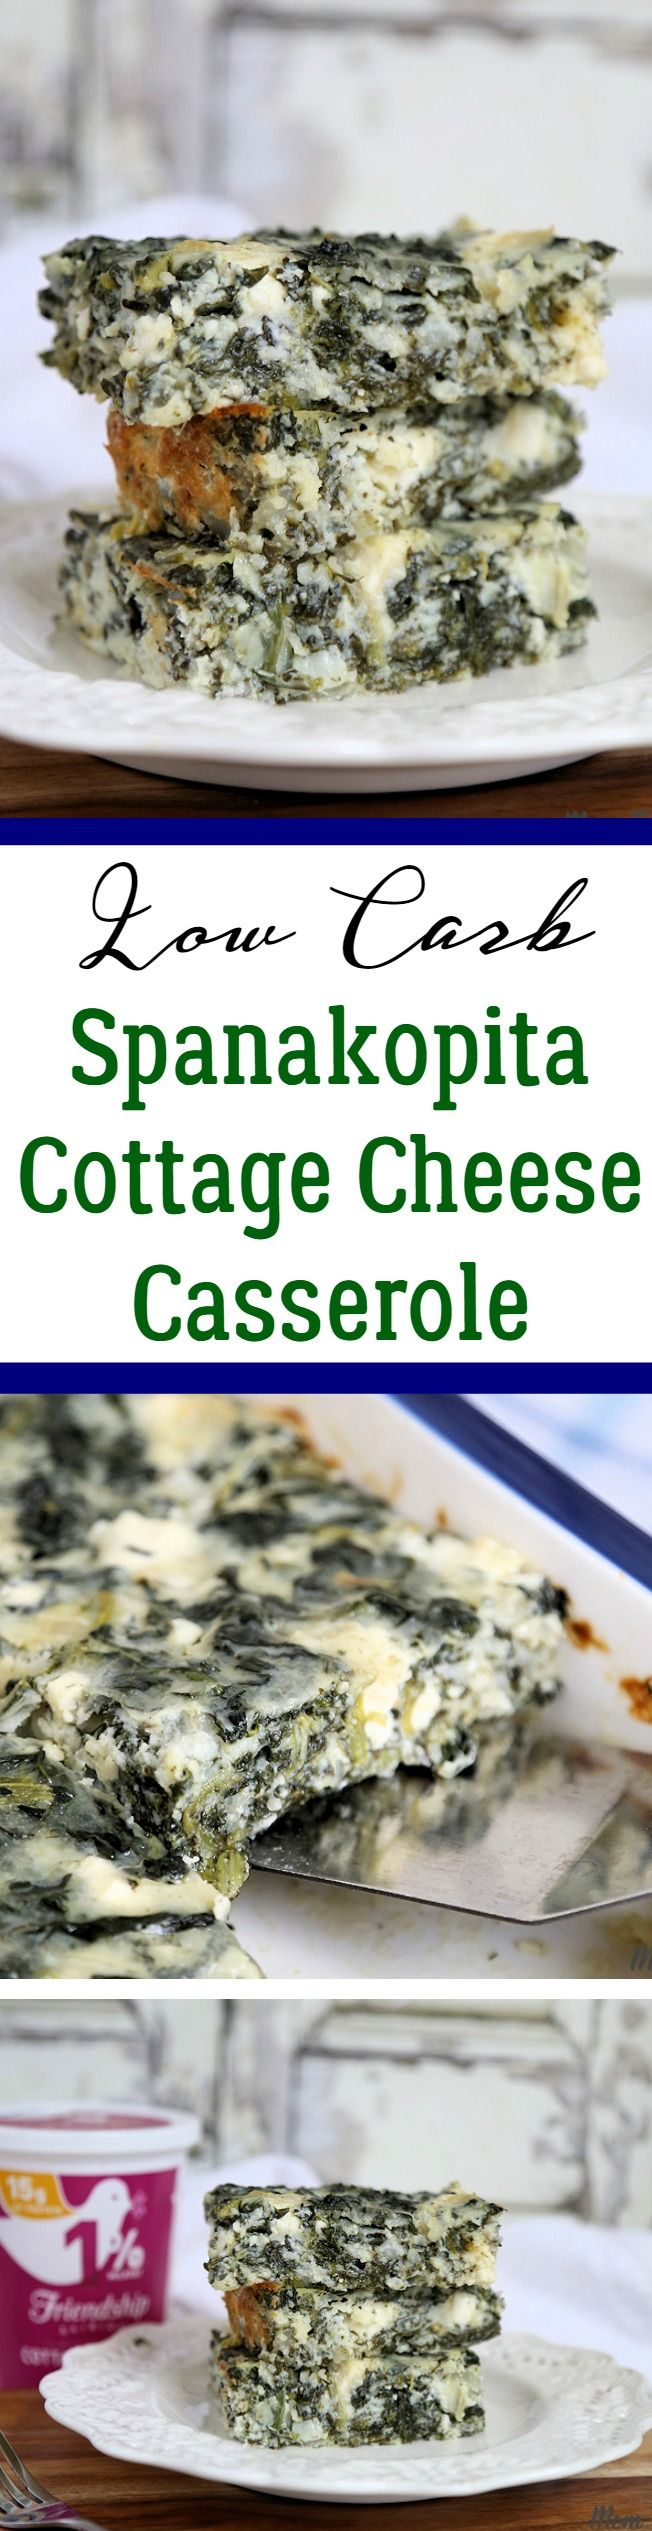 spanakopita casserole recipe - a low carb recipe that is also high in protein